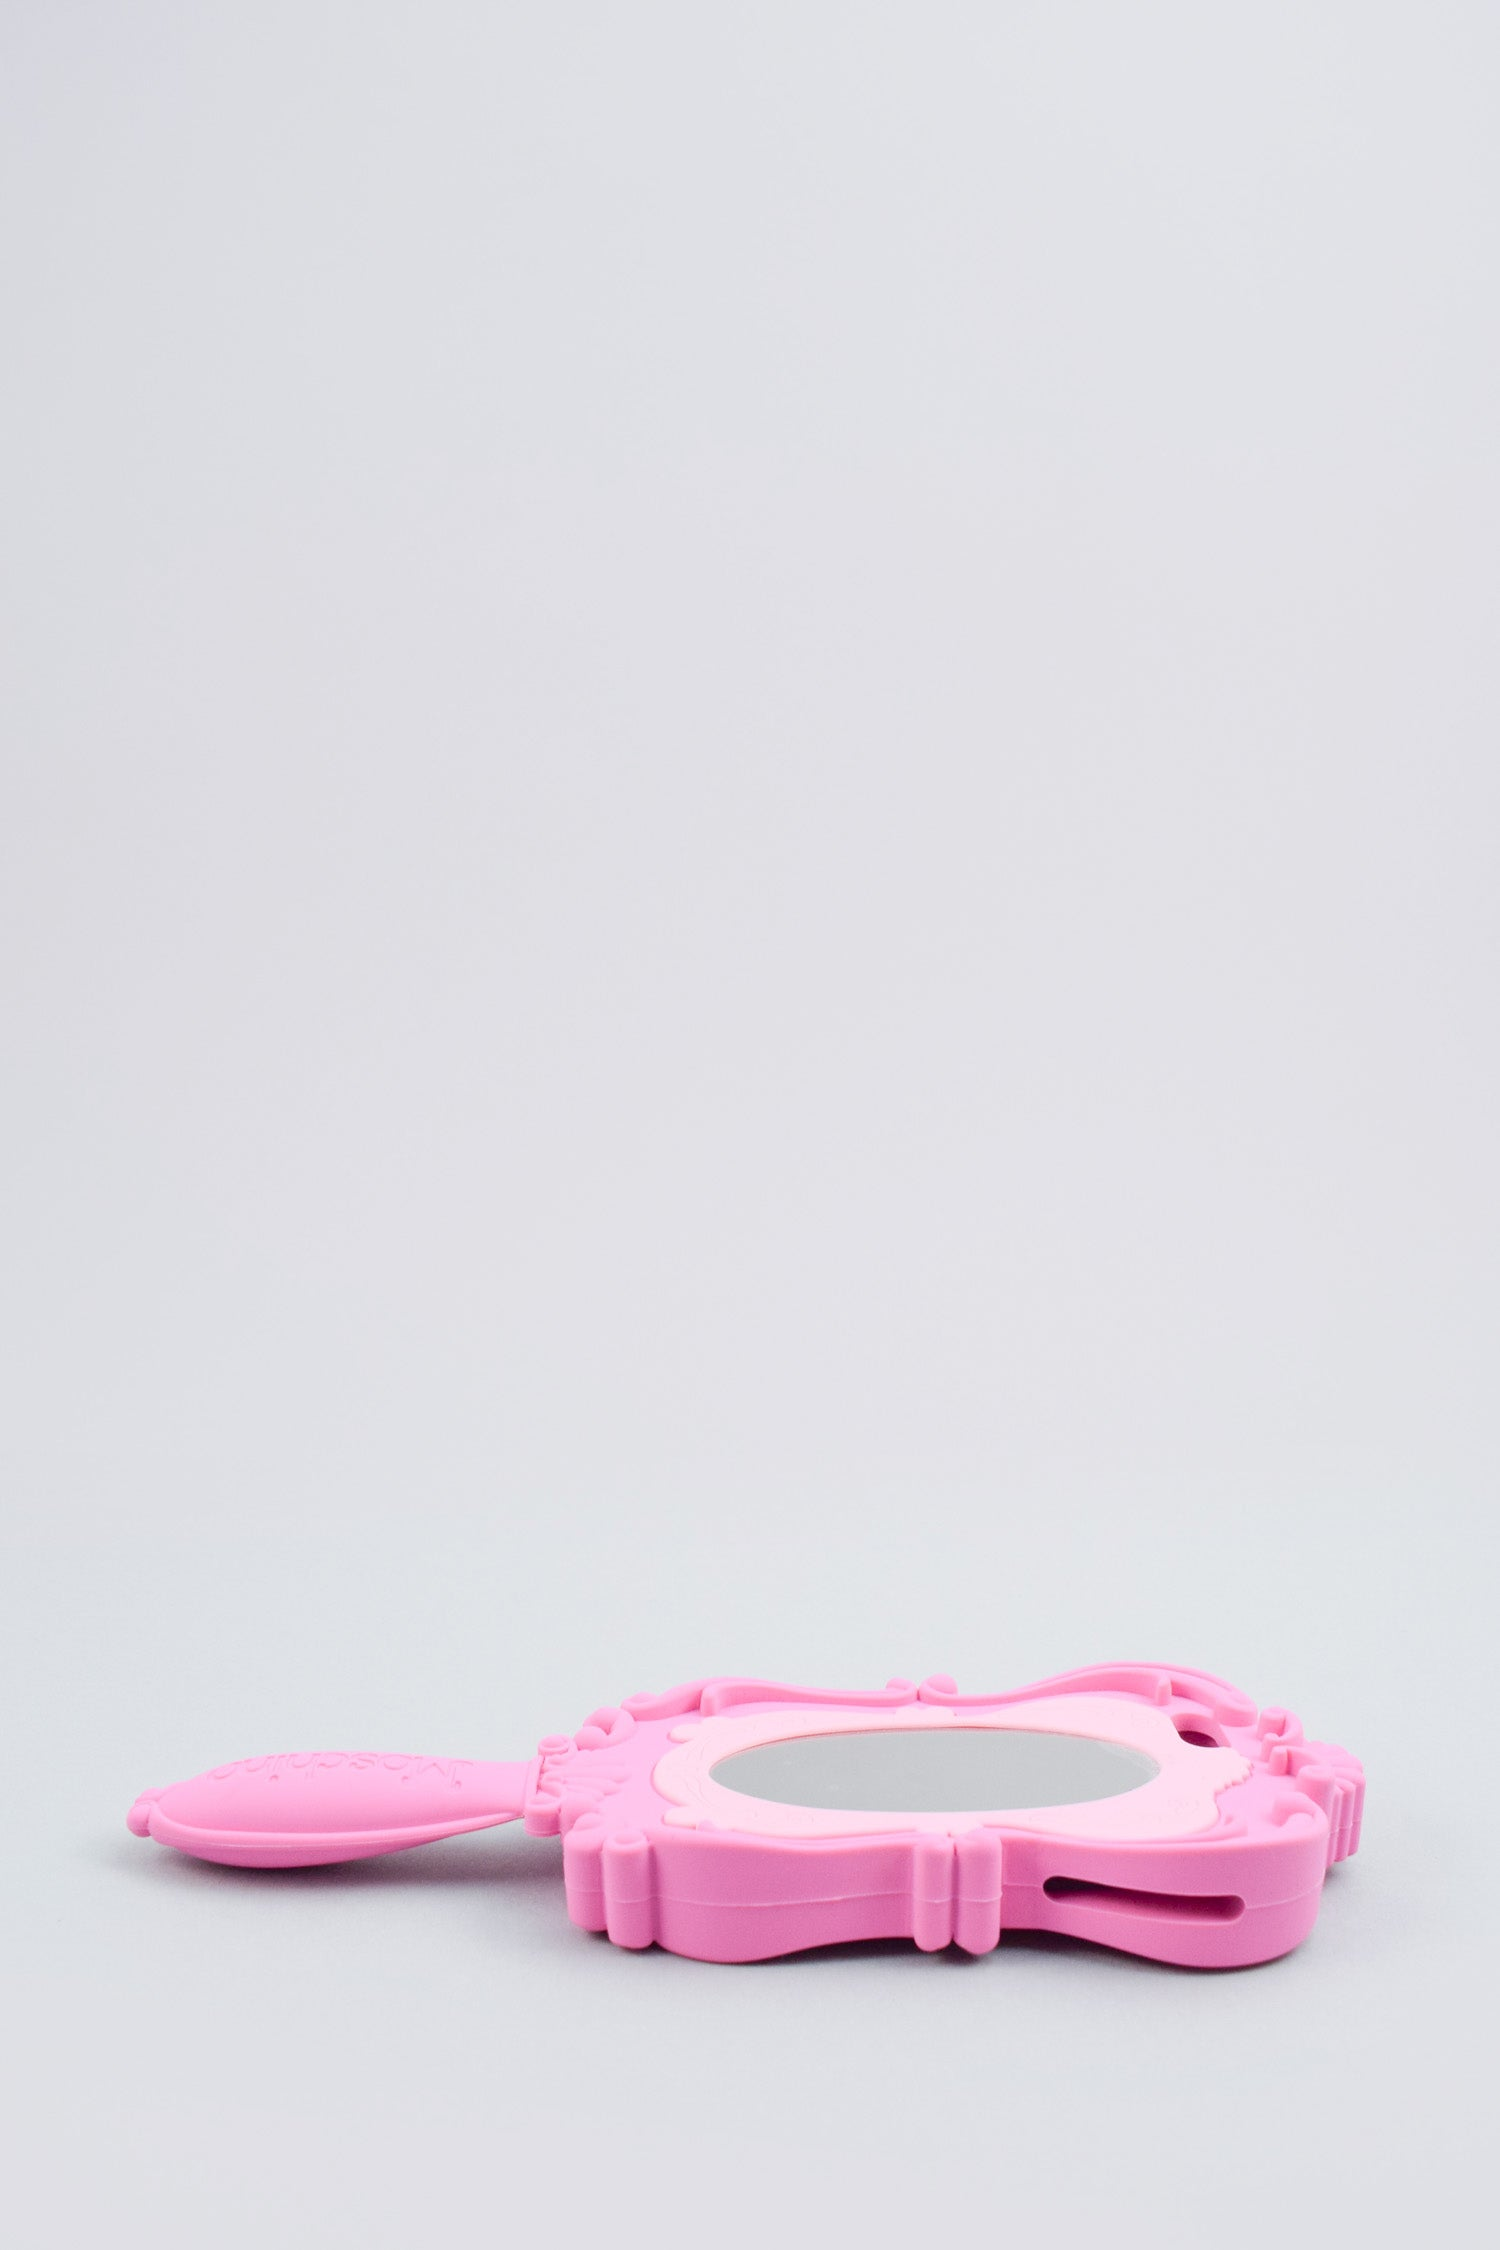 Moschino Pink Hand Mirror iPhone 5 Case